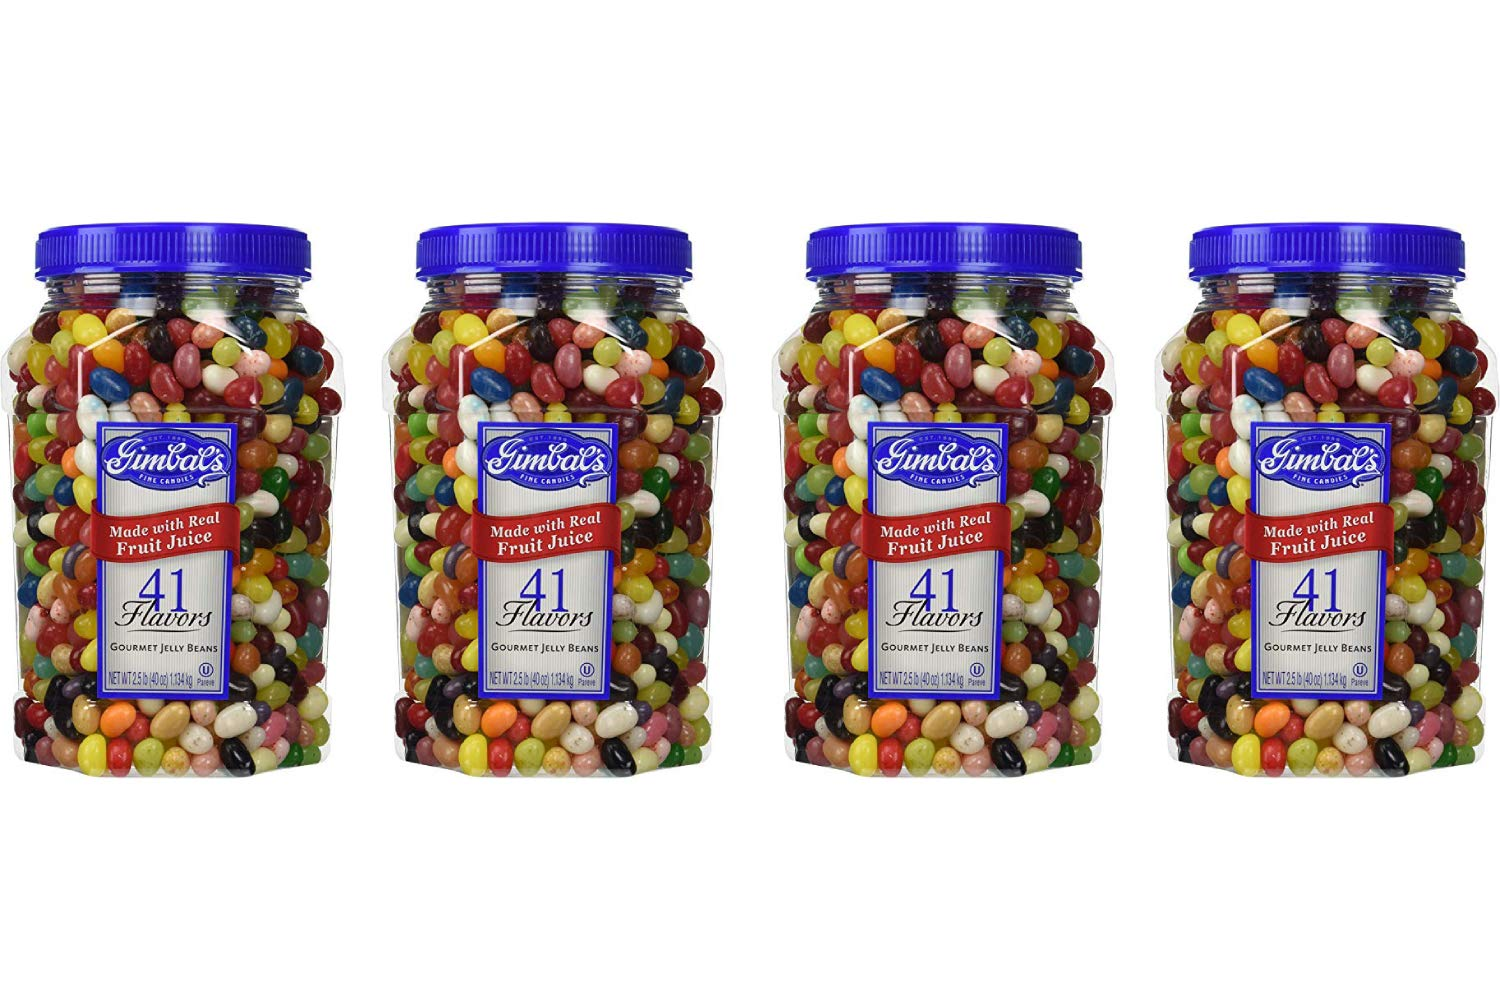 Gimbal's Fine Candies Gourmet Jelly Beans, 41 Flavors, 40-Ounce Jar (4 Pack)